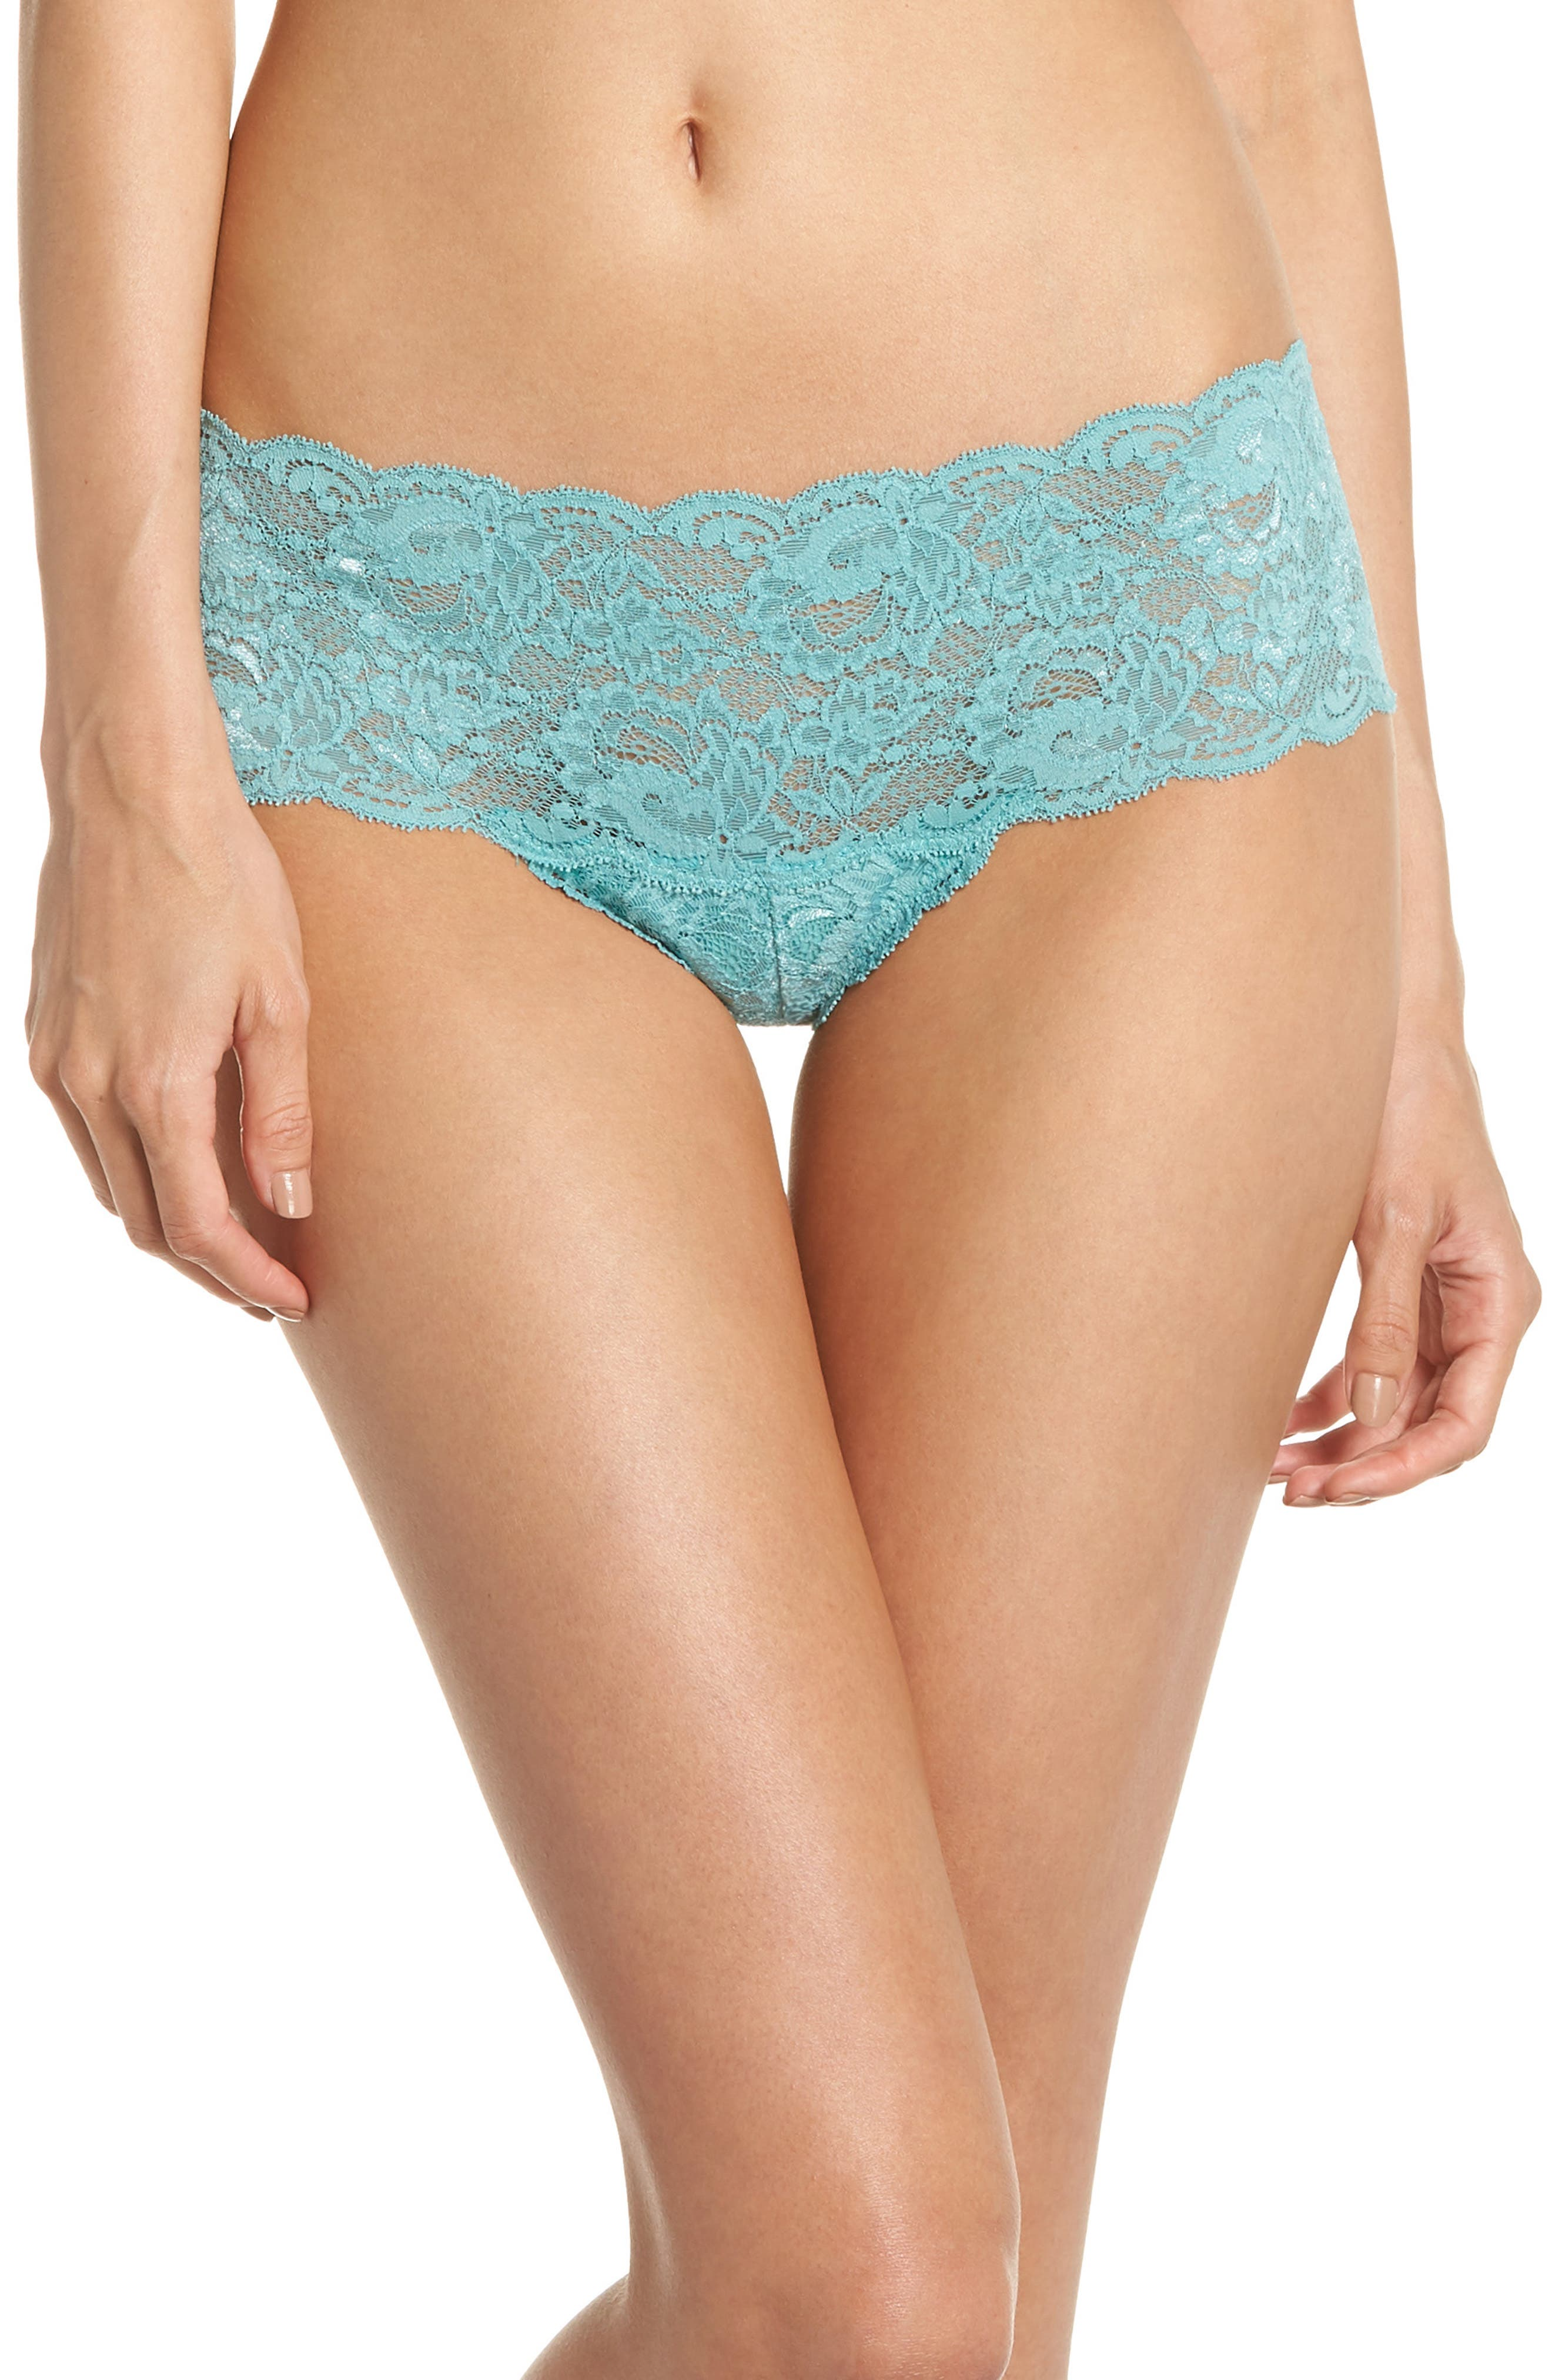 'Never Say Never' Hipster Briefs,                         Main,                         color, Dusty Turquoise